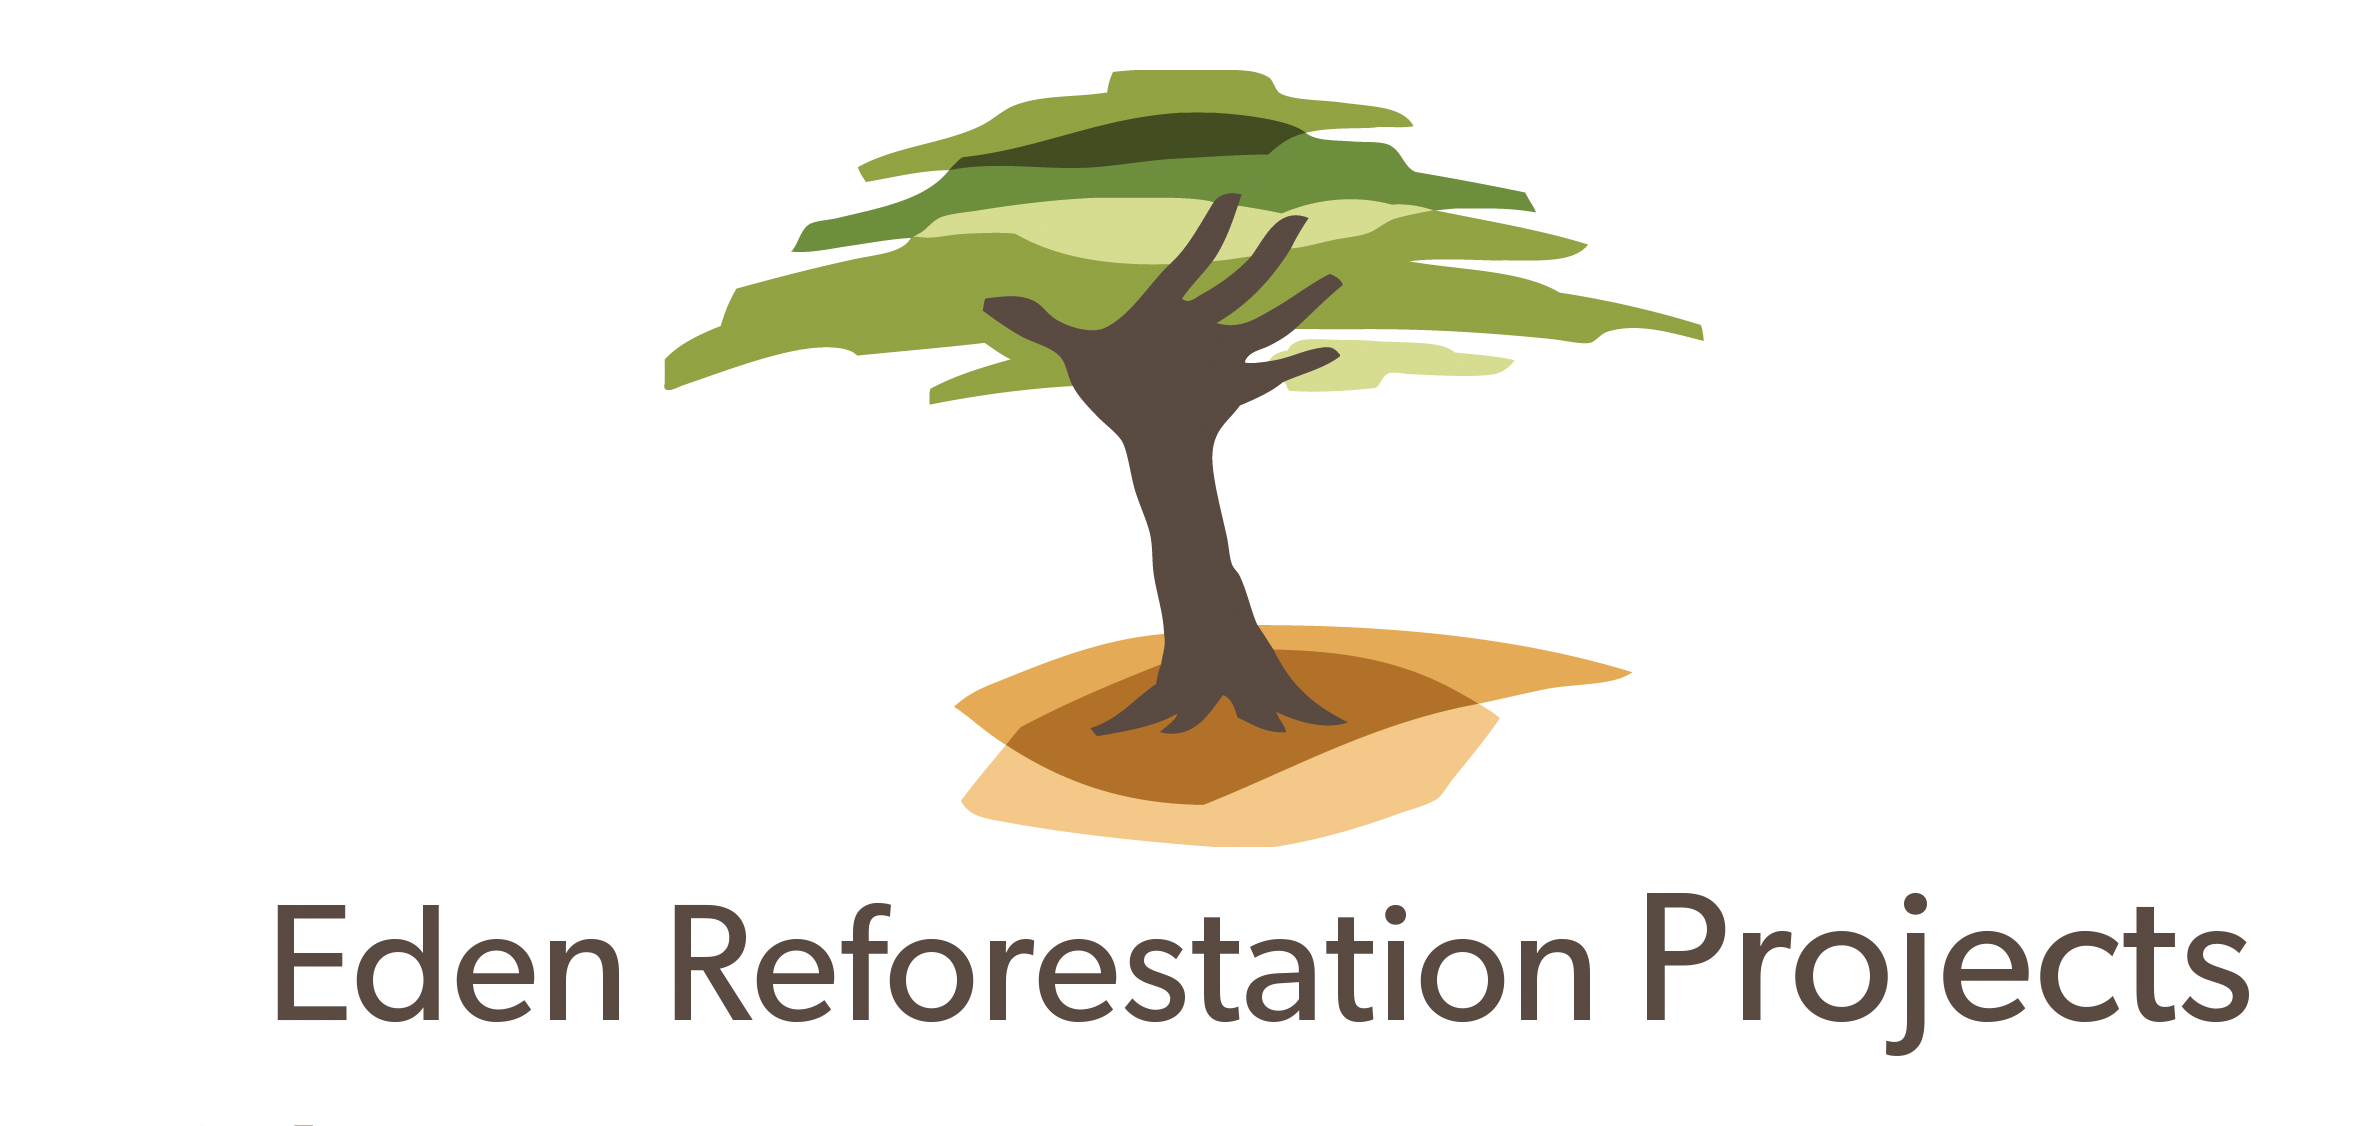 tree of the Eden Reforestation Logo